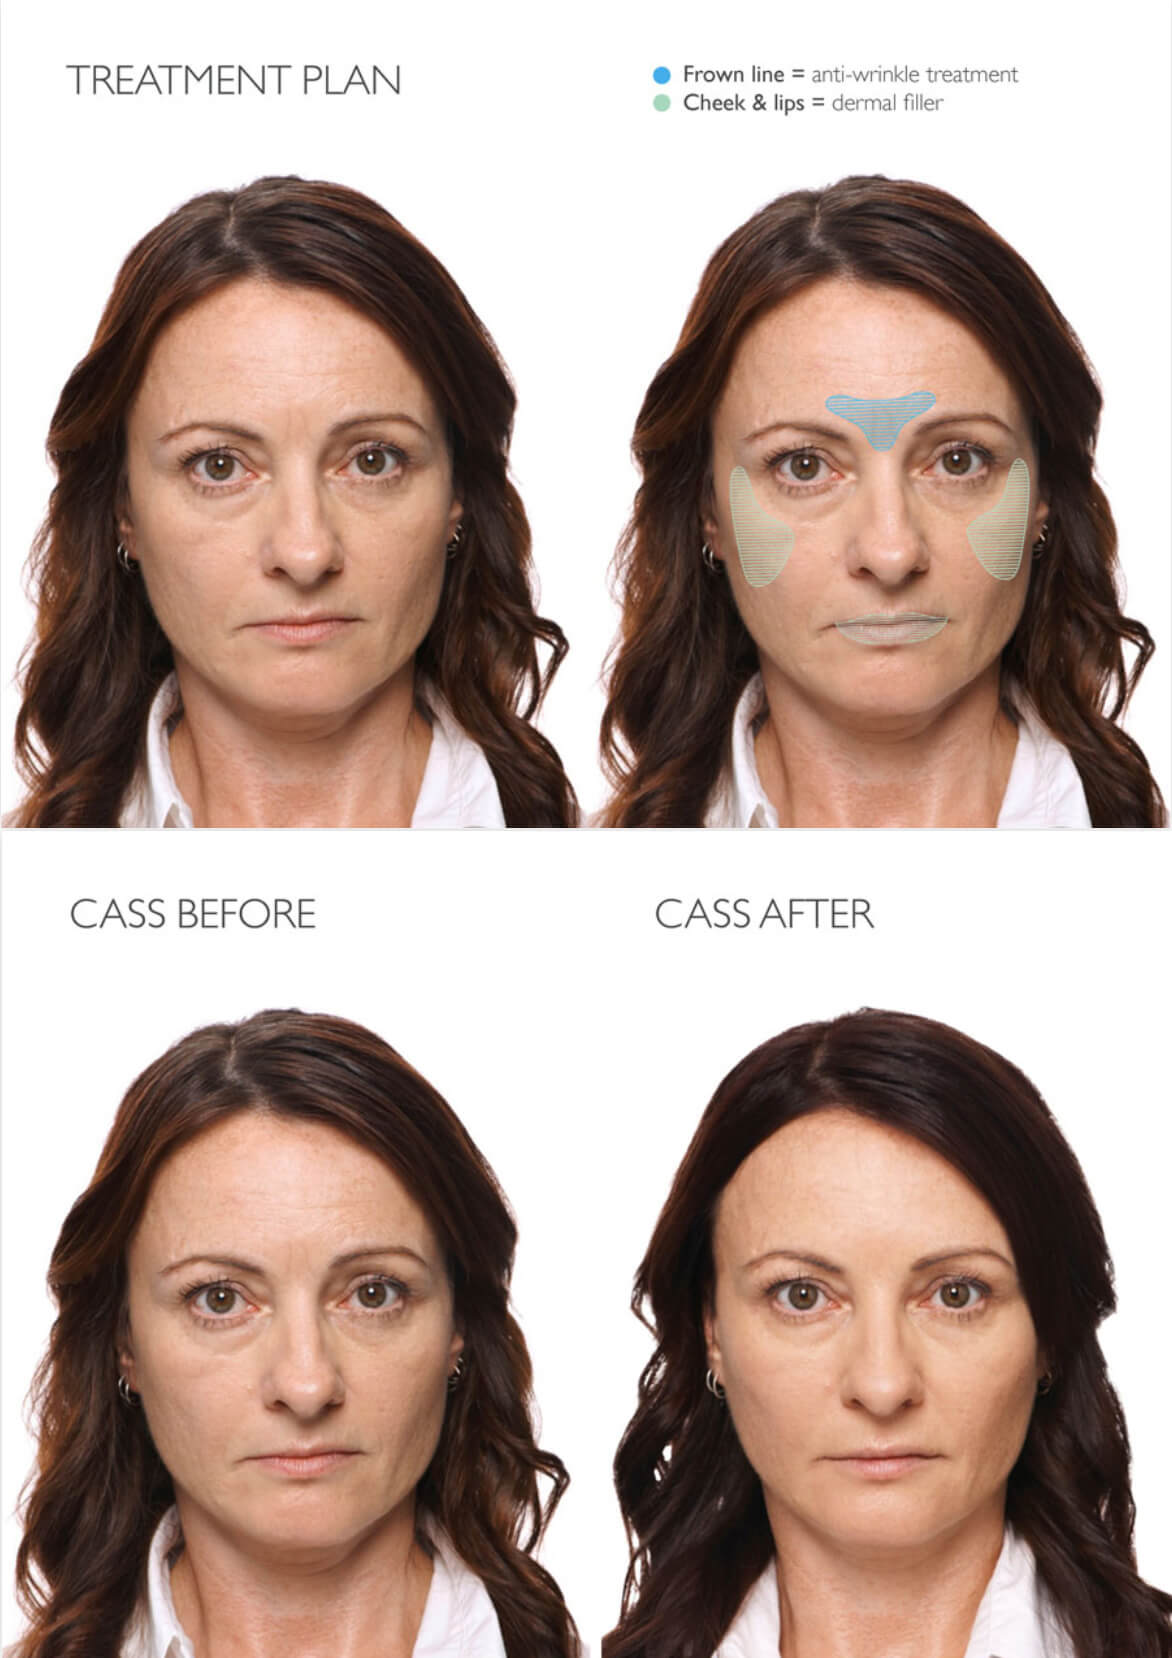 Bioscor International facial anti-wrinkles, botox, dysport, fillers, hyaluronic acid treatment areas Case Study Cass Before and After